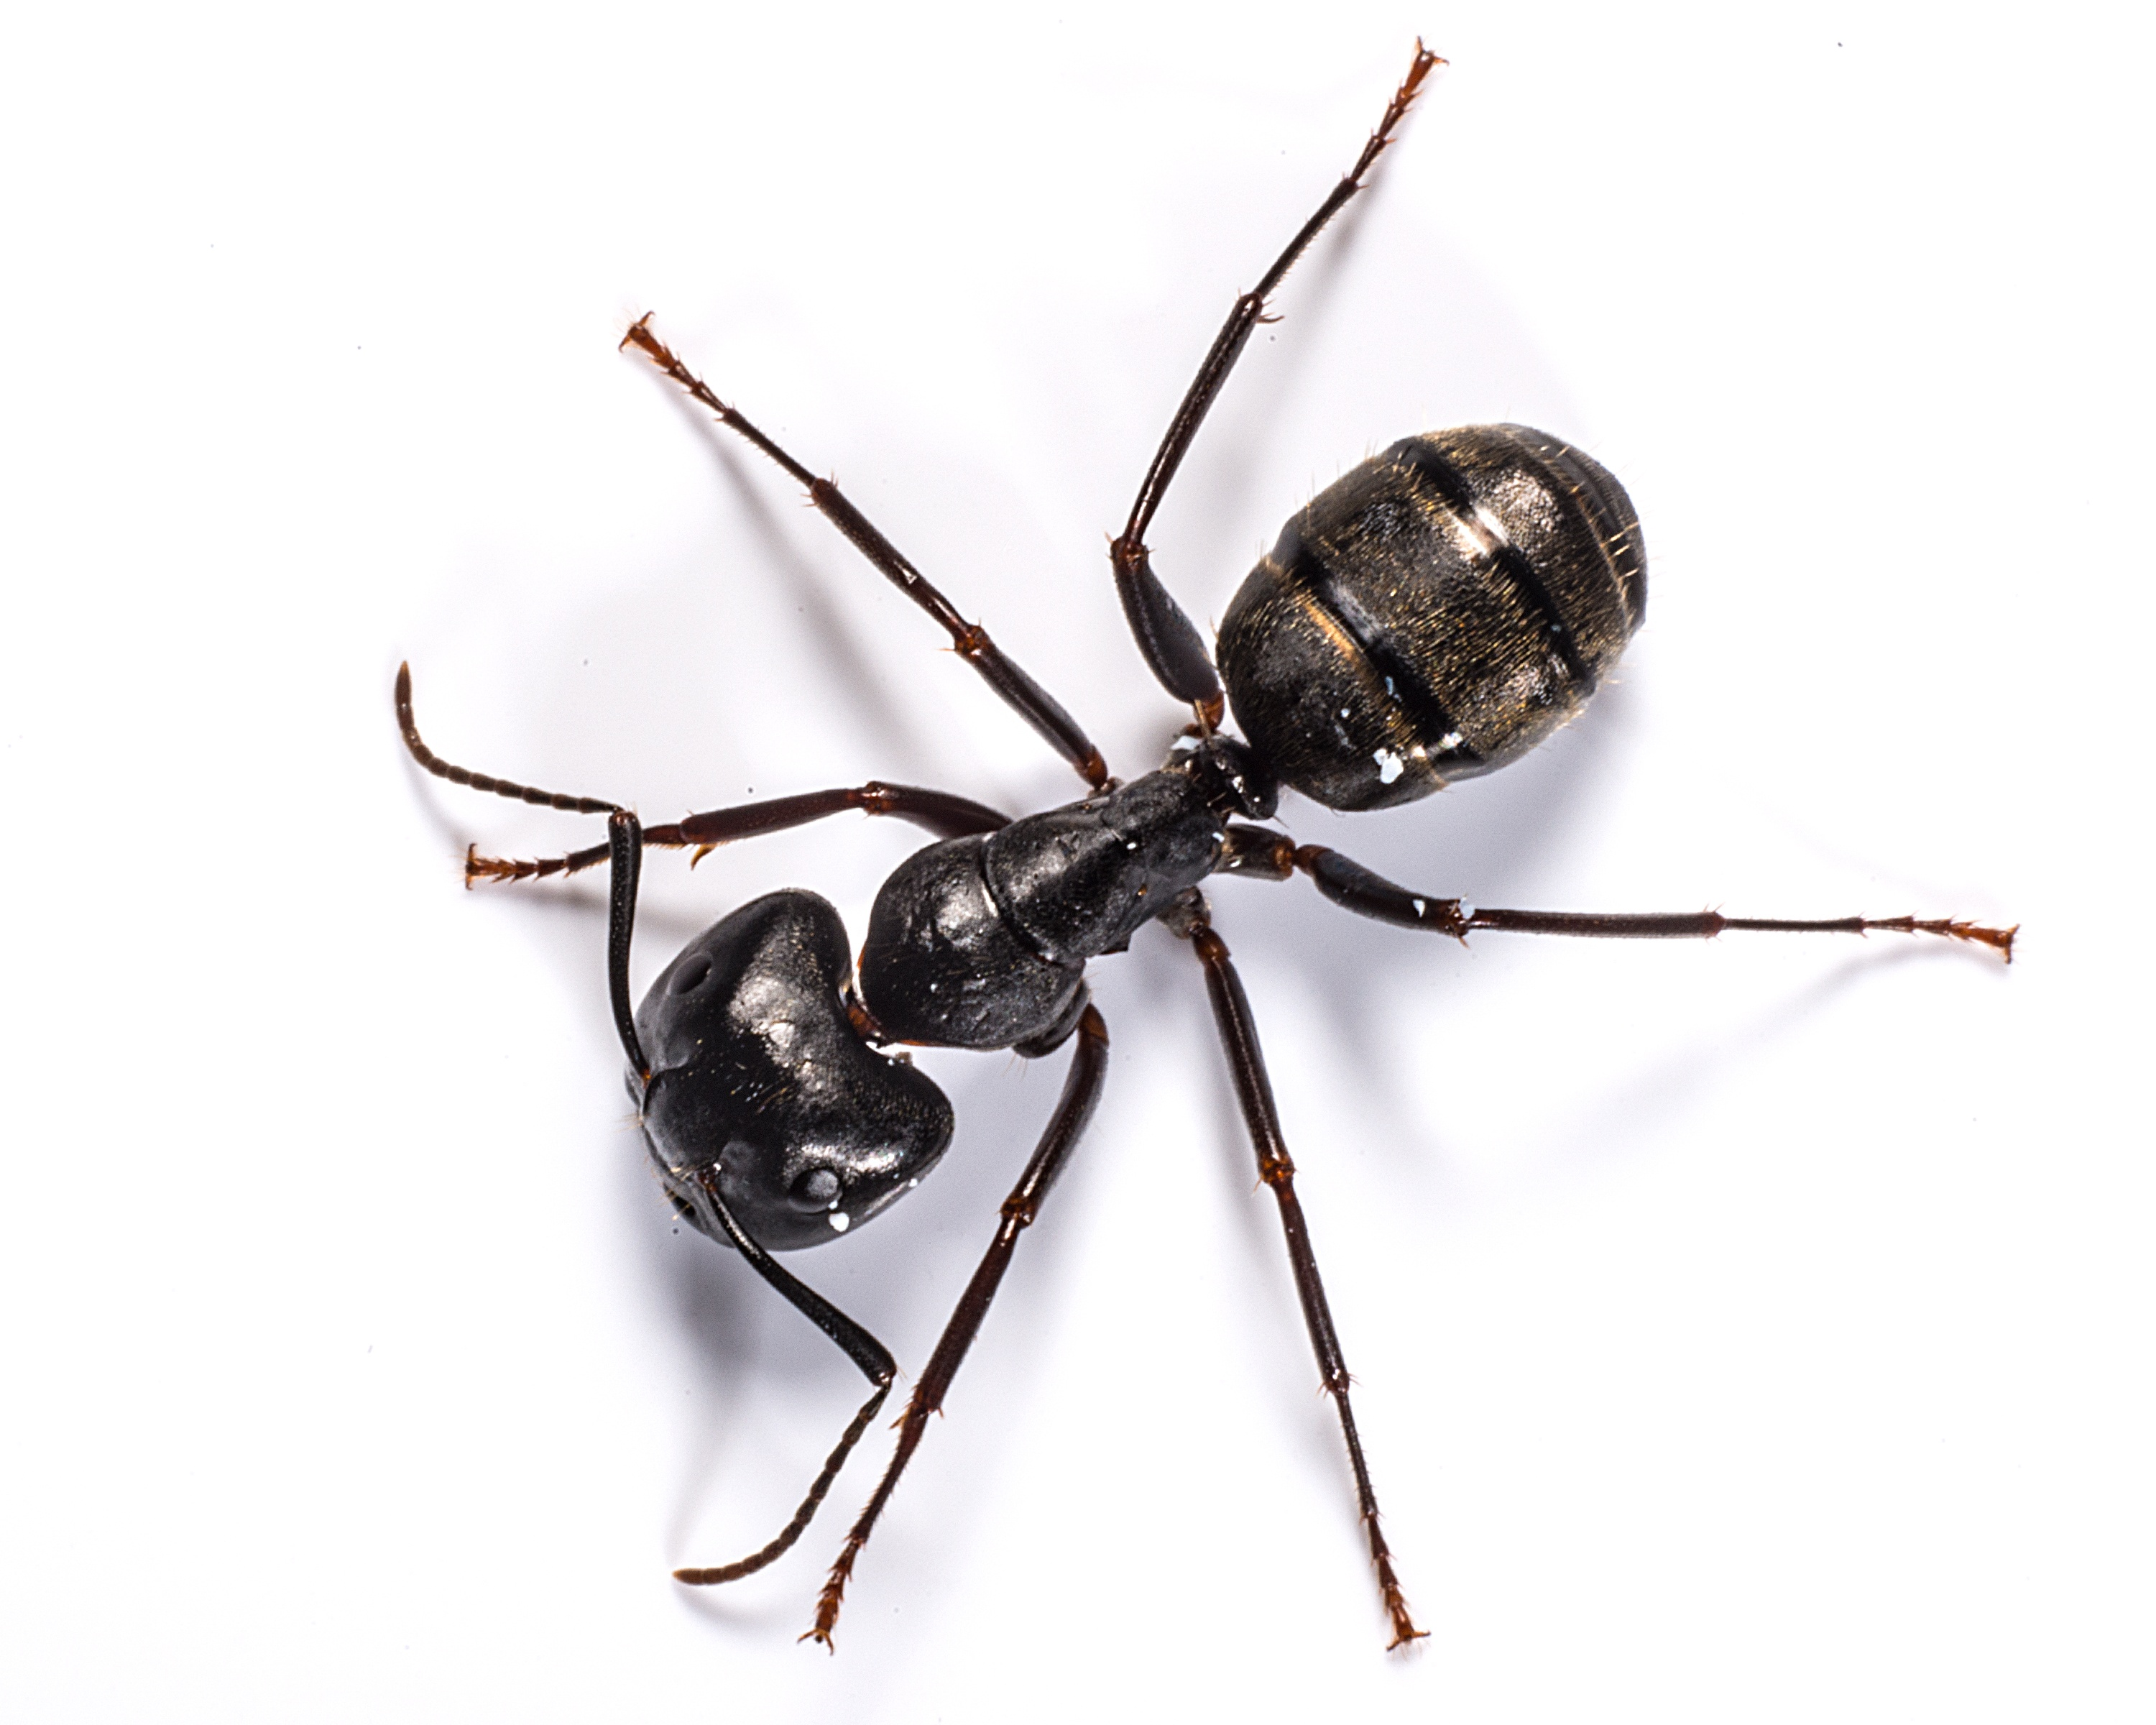 08_Carpenter_Ant.jpg